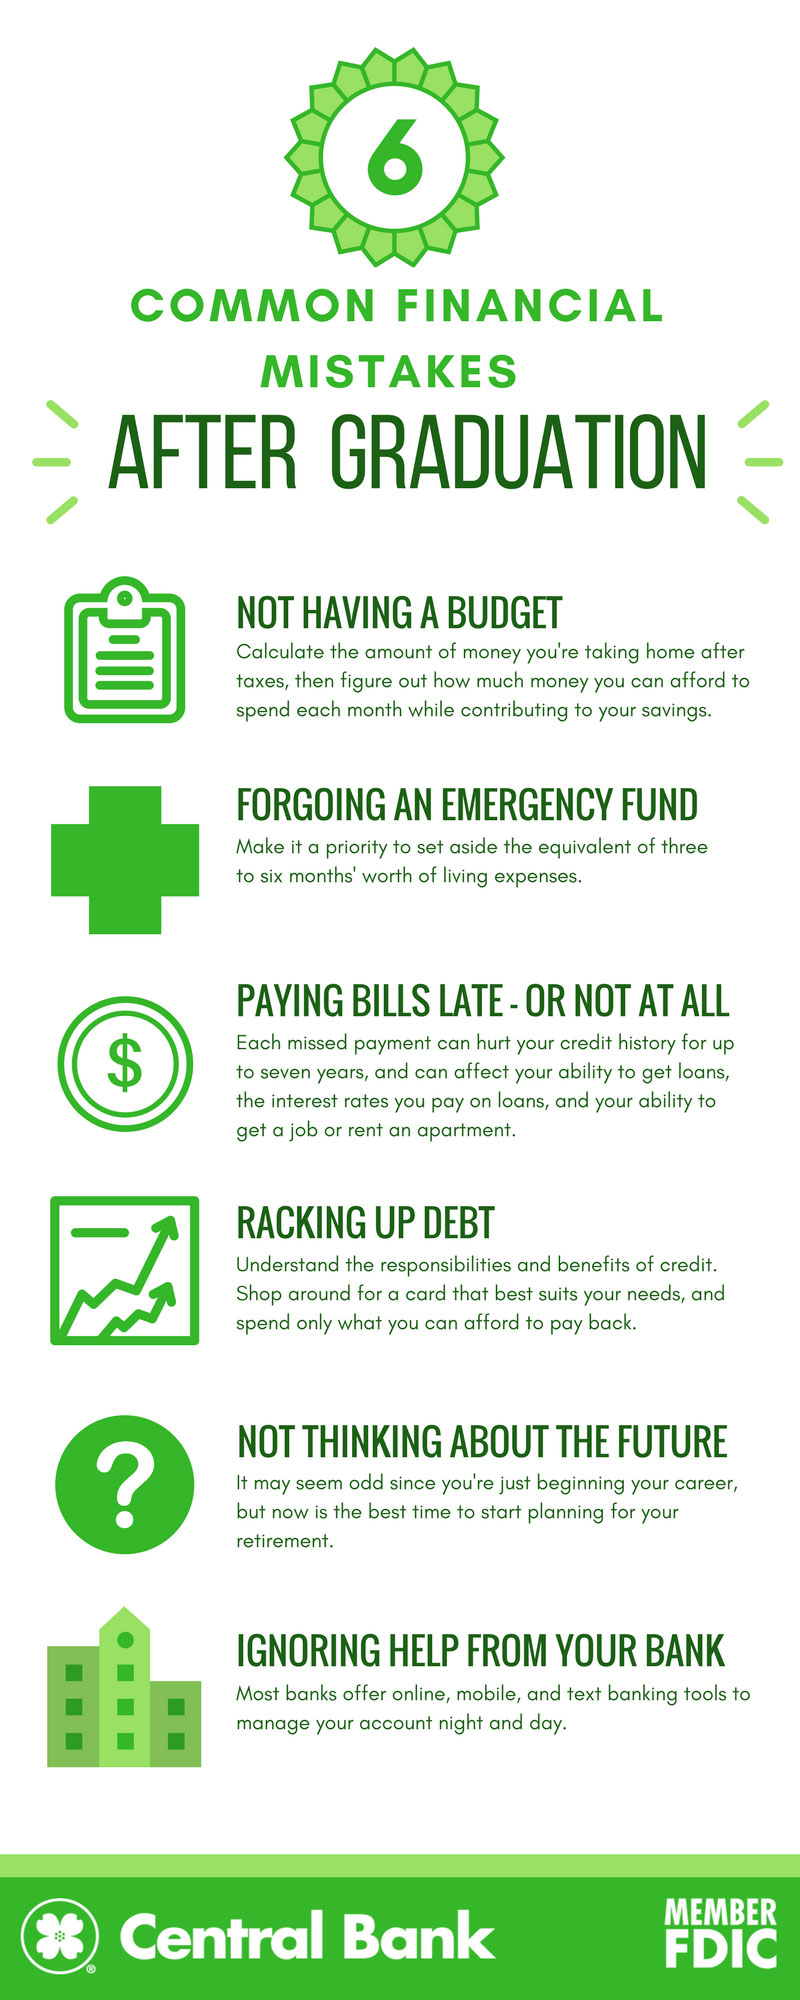 an infographic outlining common financial mistakes after graduation